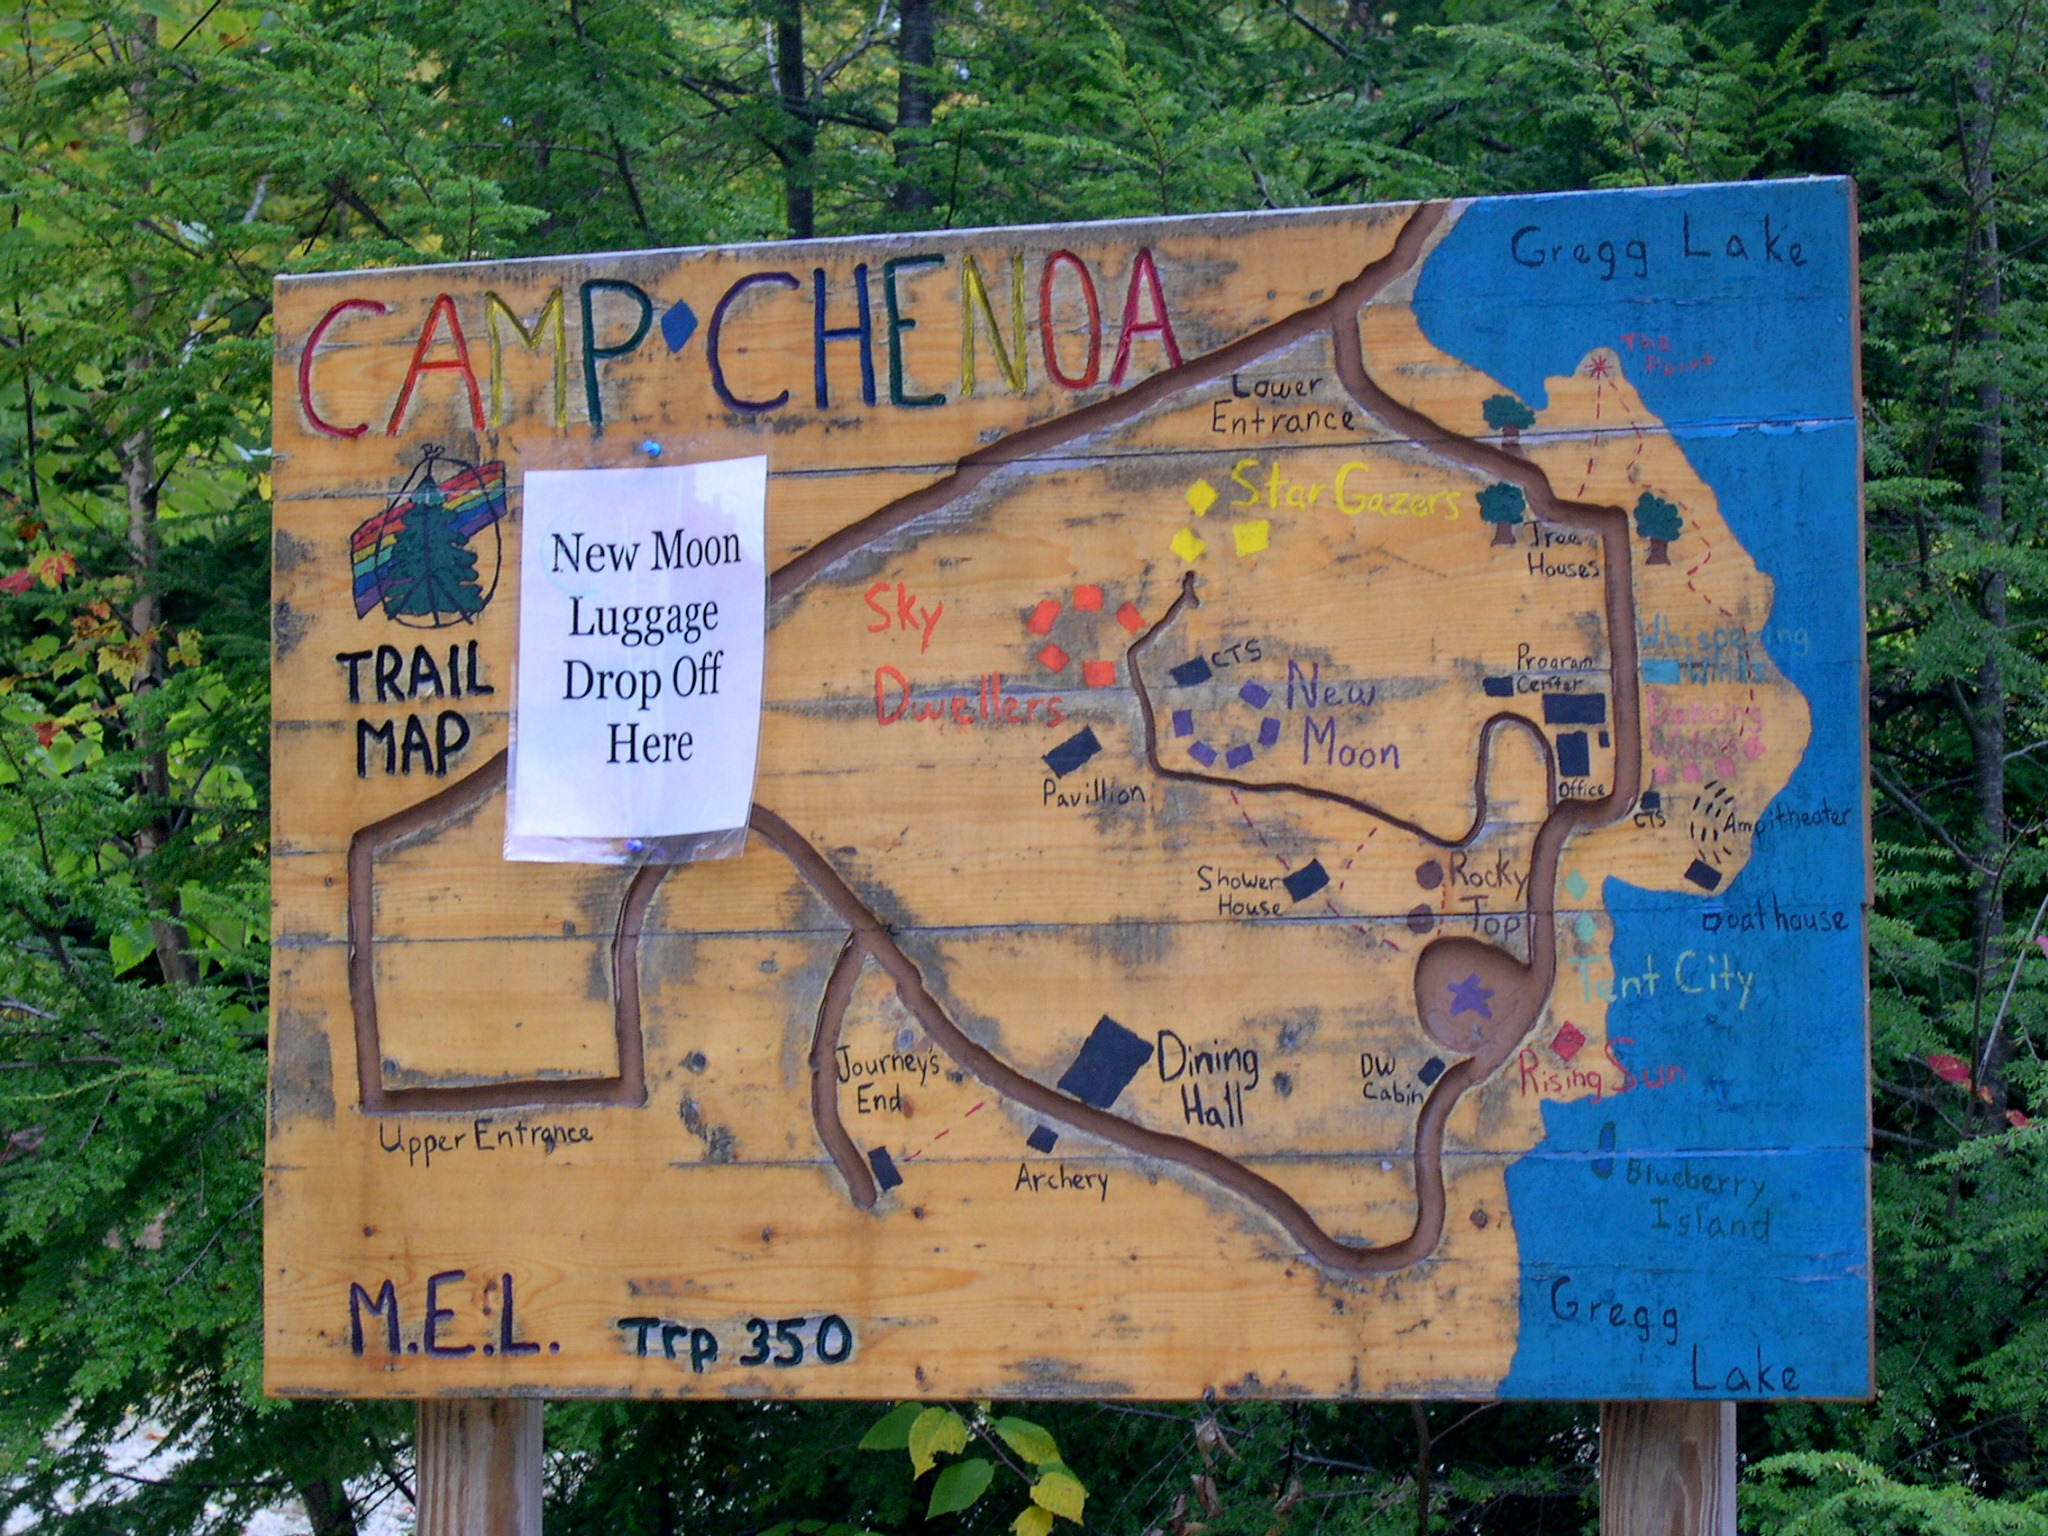 camp chenoa map